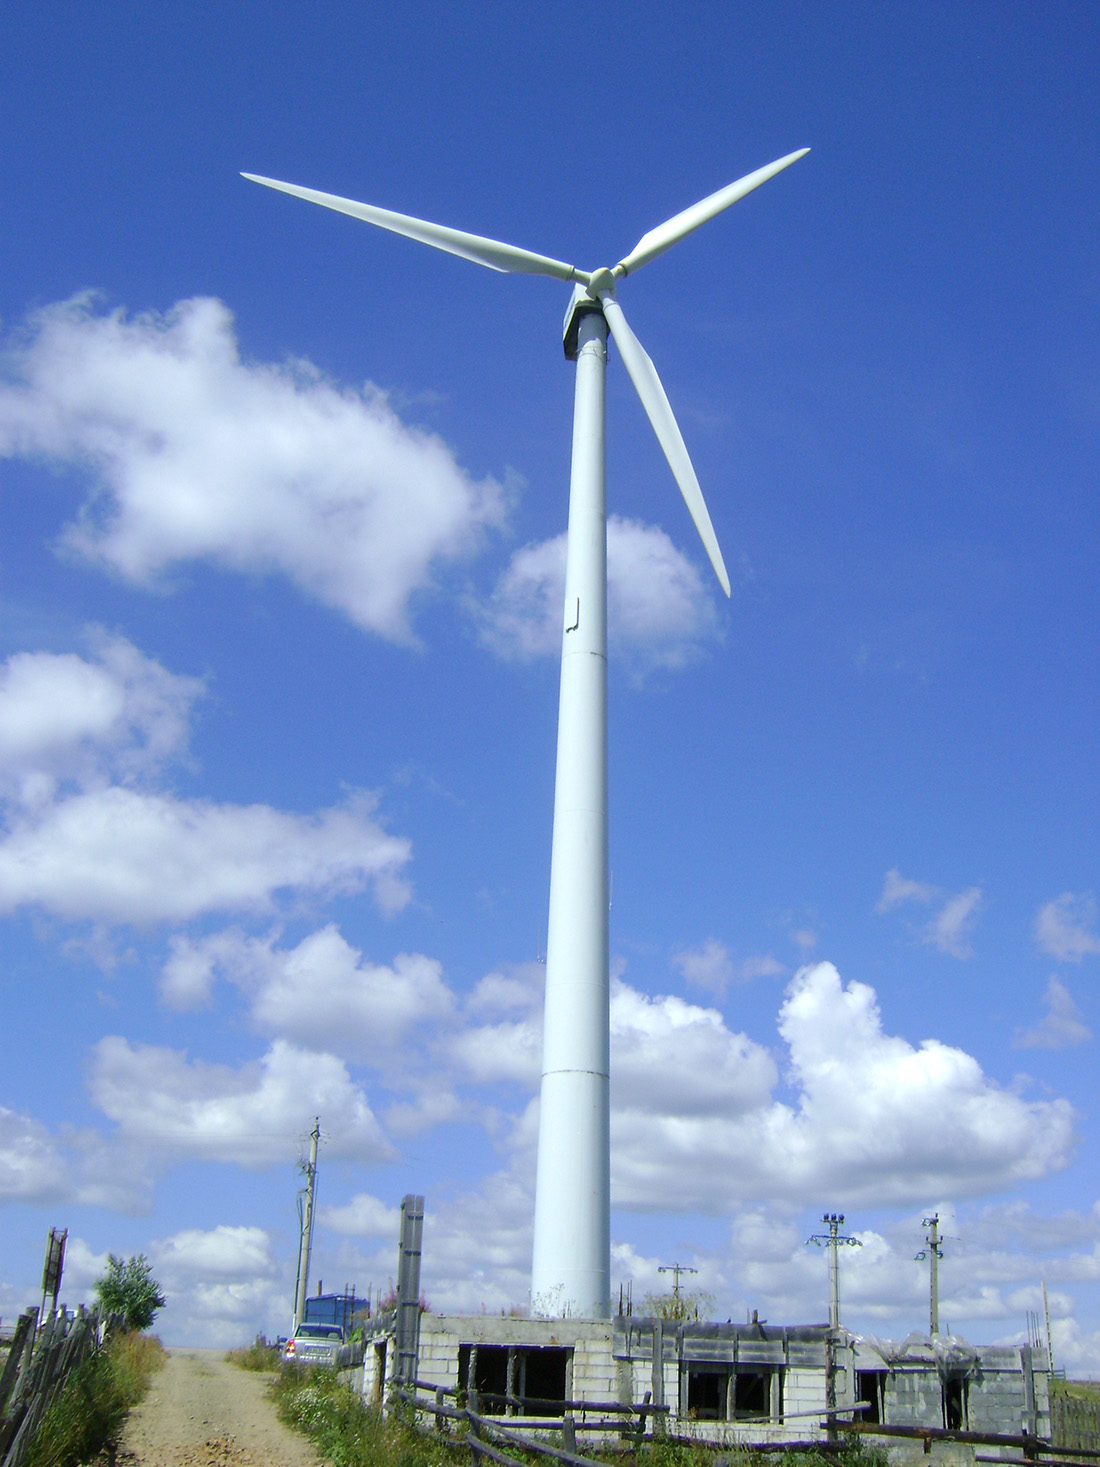 Tihuta Pass wind turbine